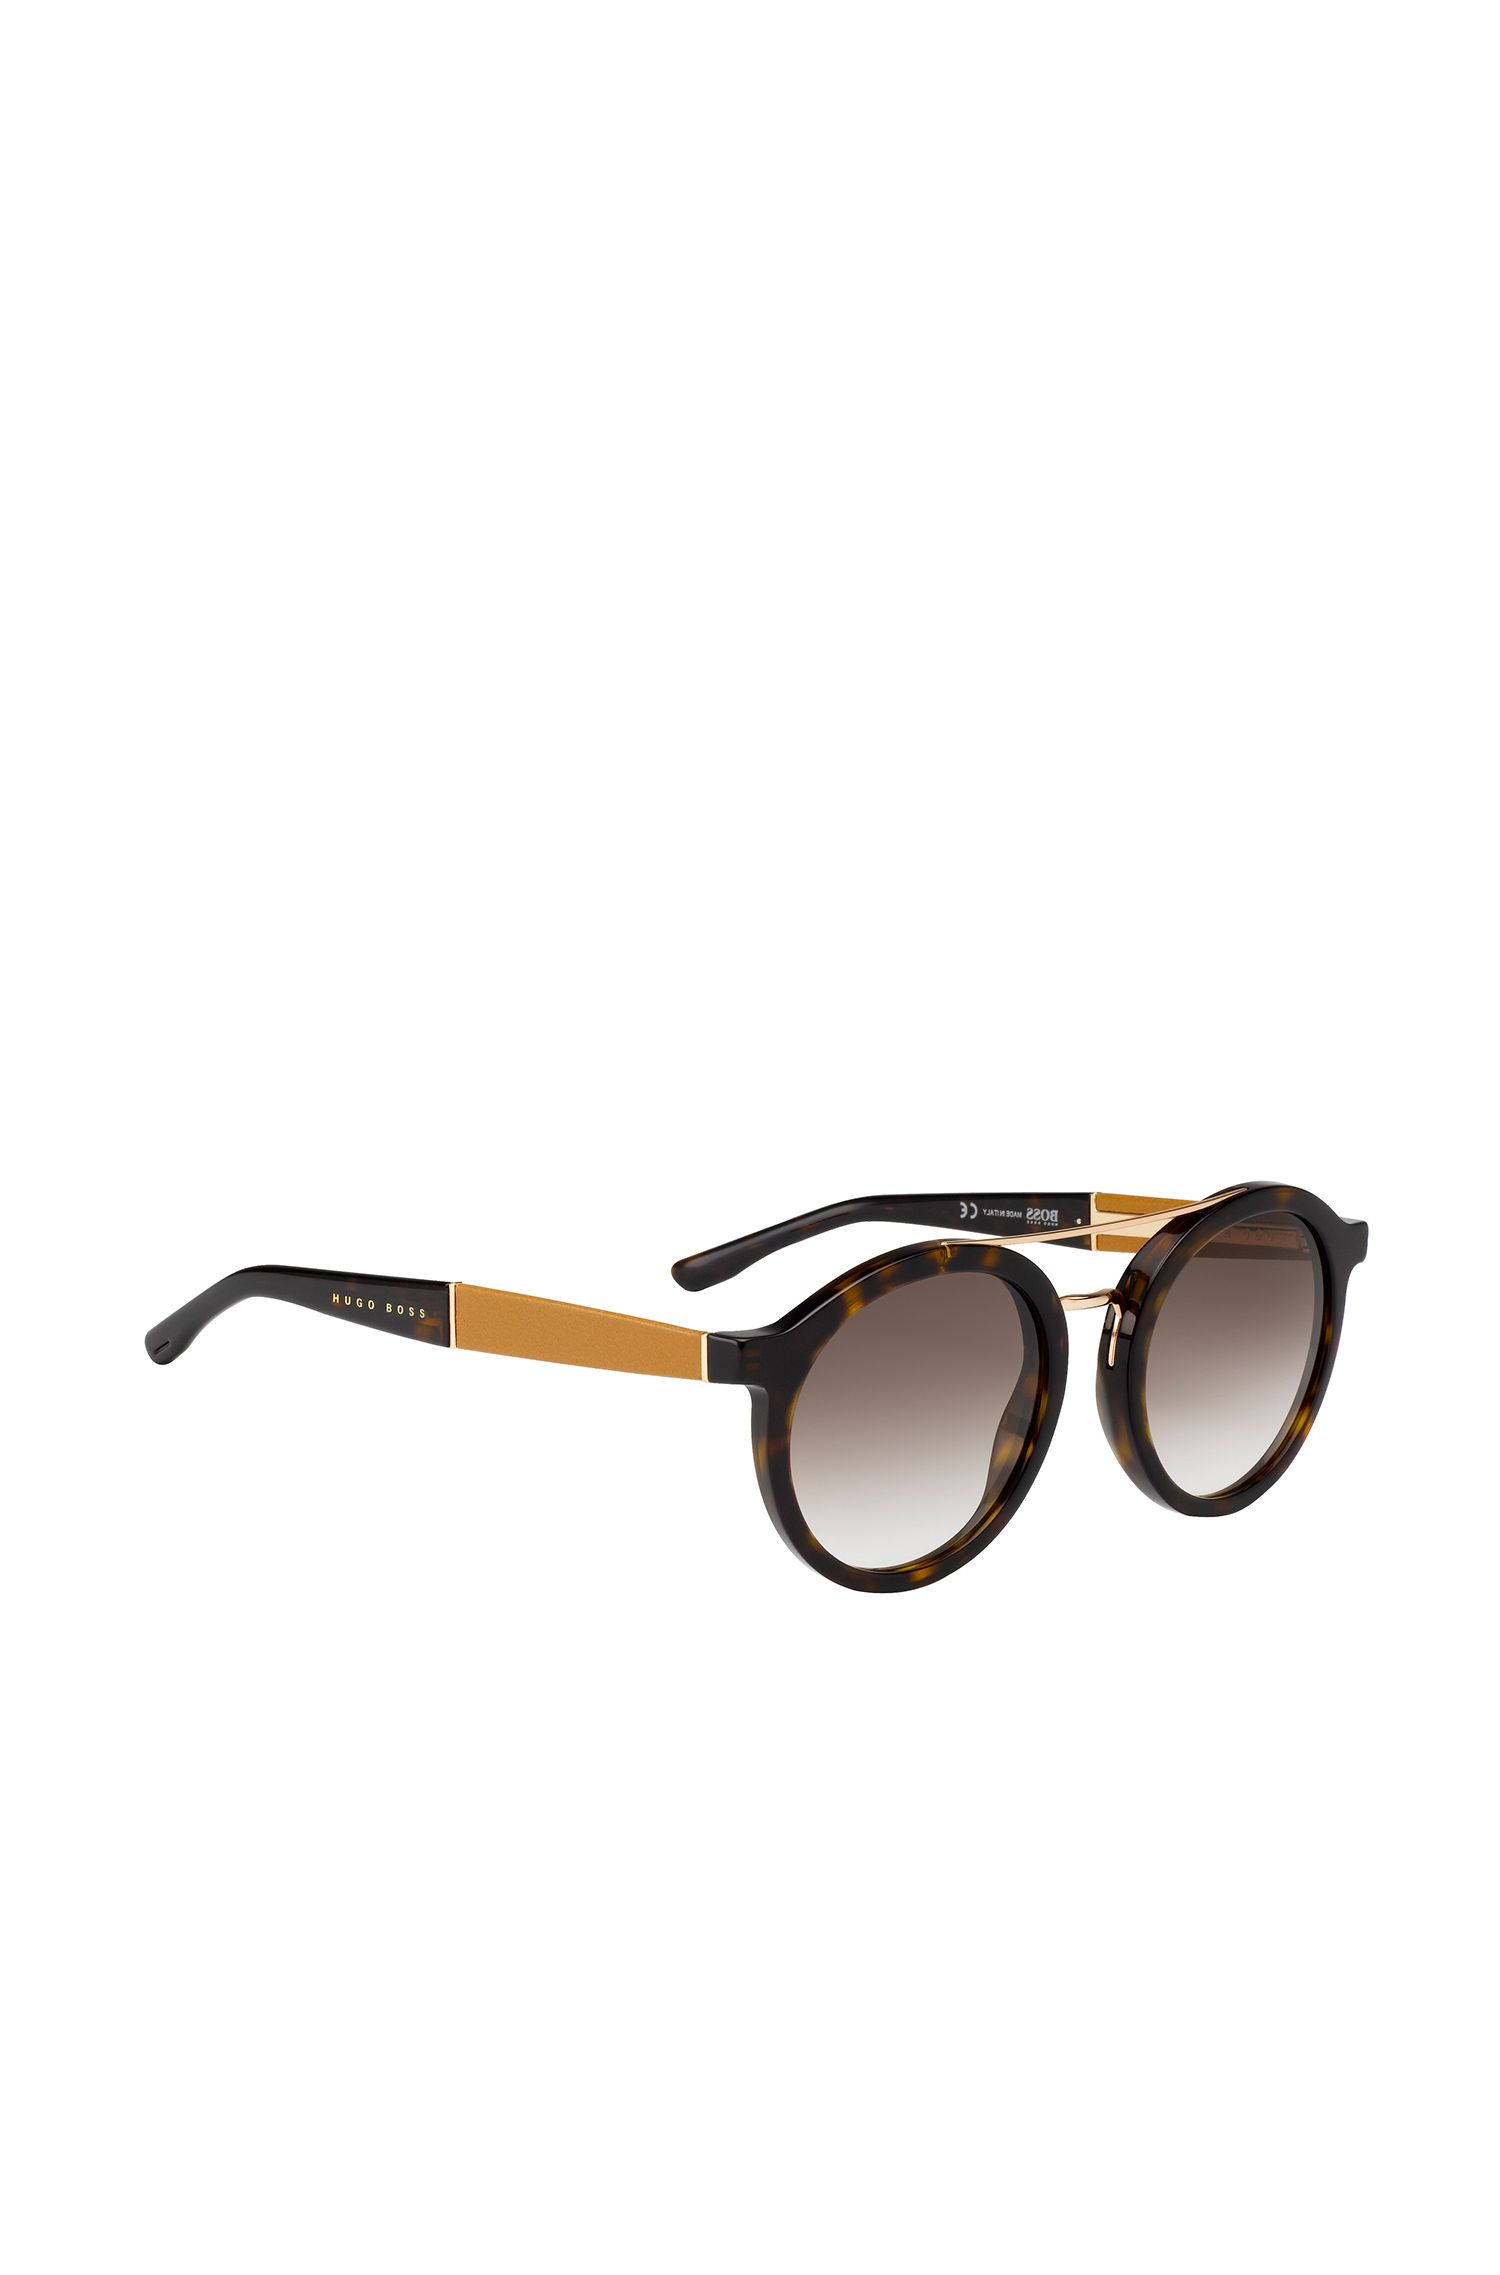 Round Gradient Lens Acetate Leather Sunglasses | BOSS 0853S